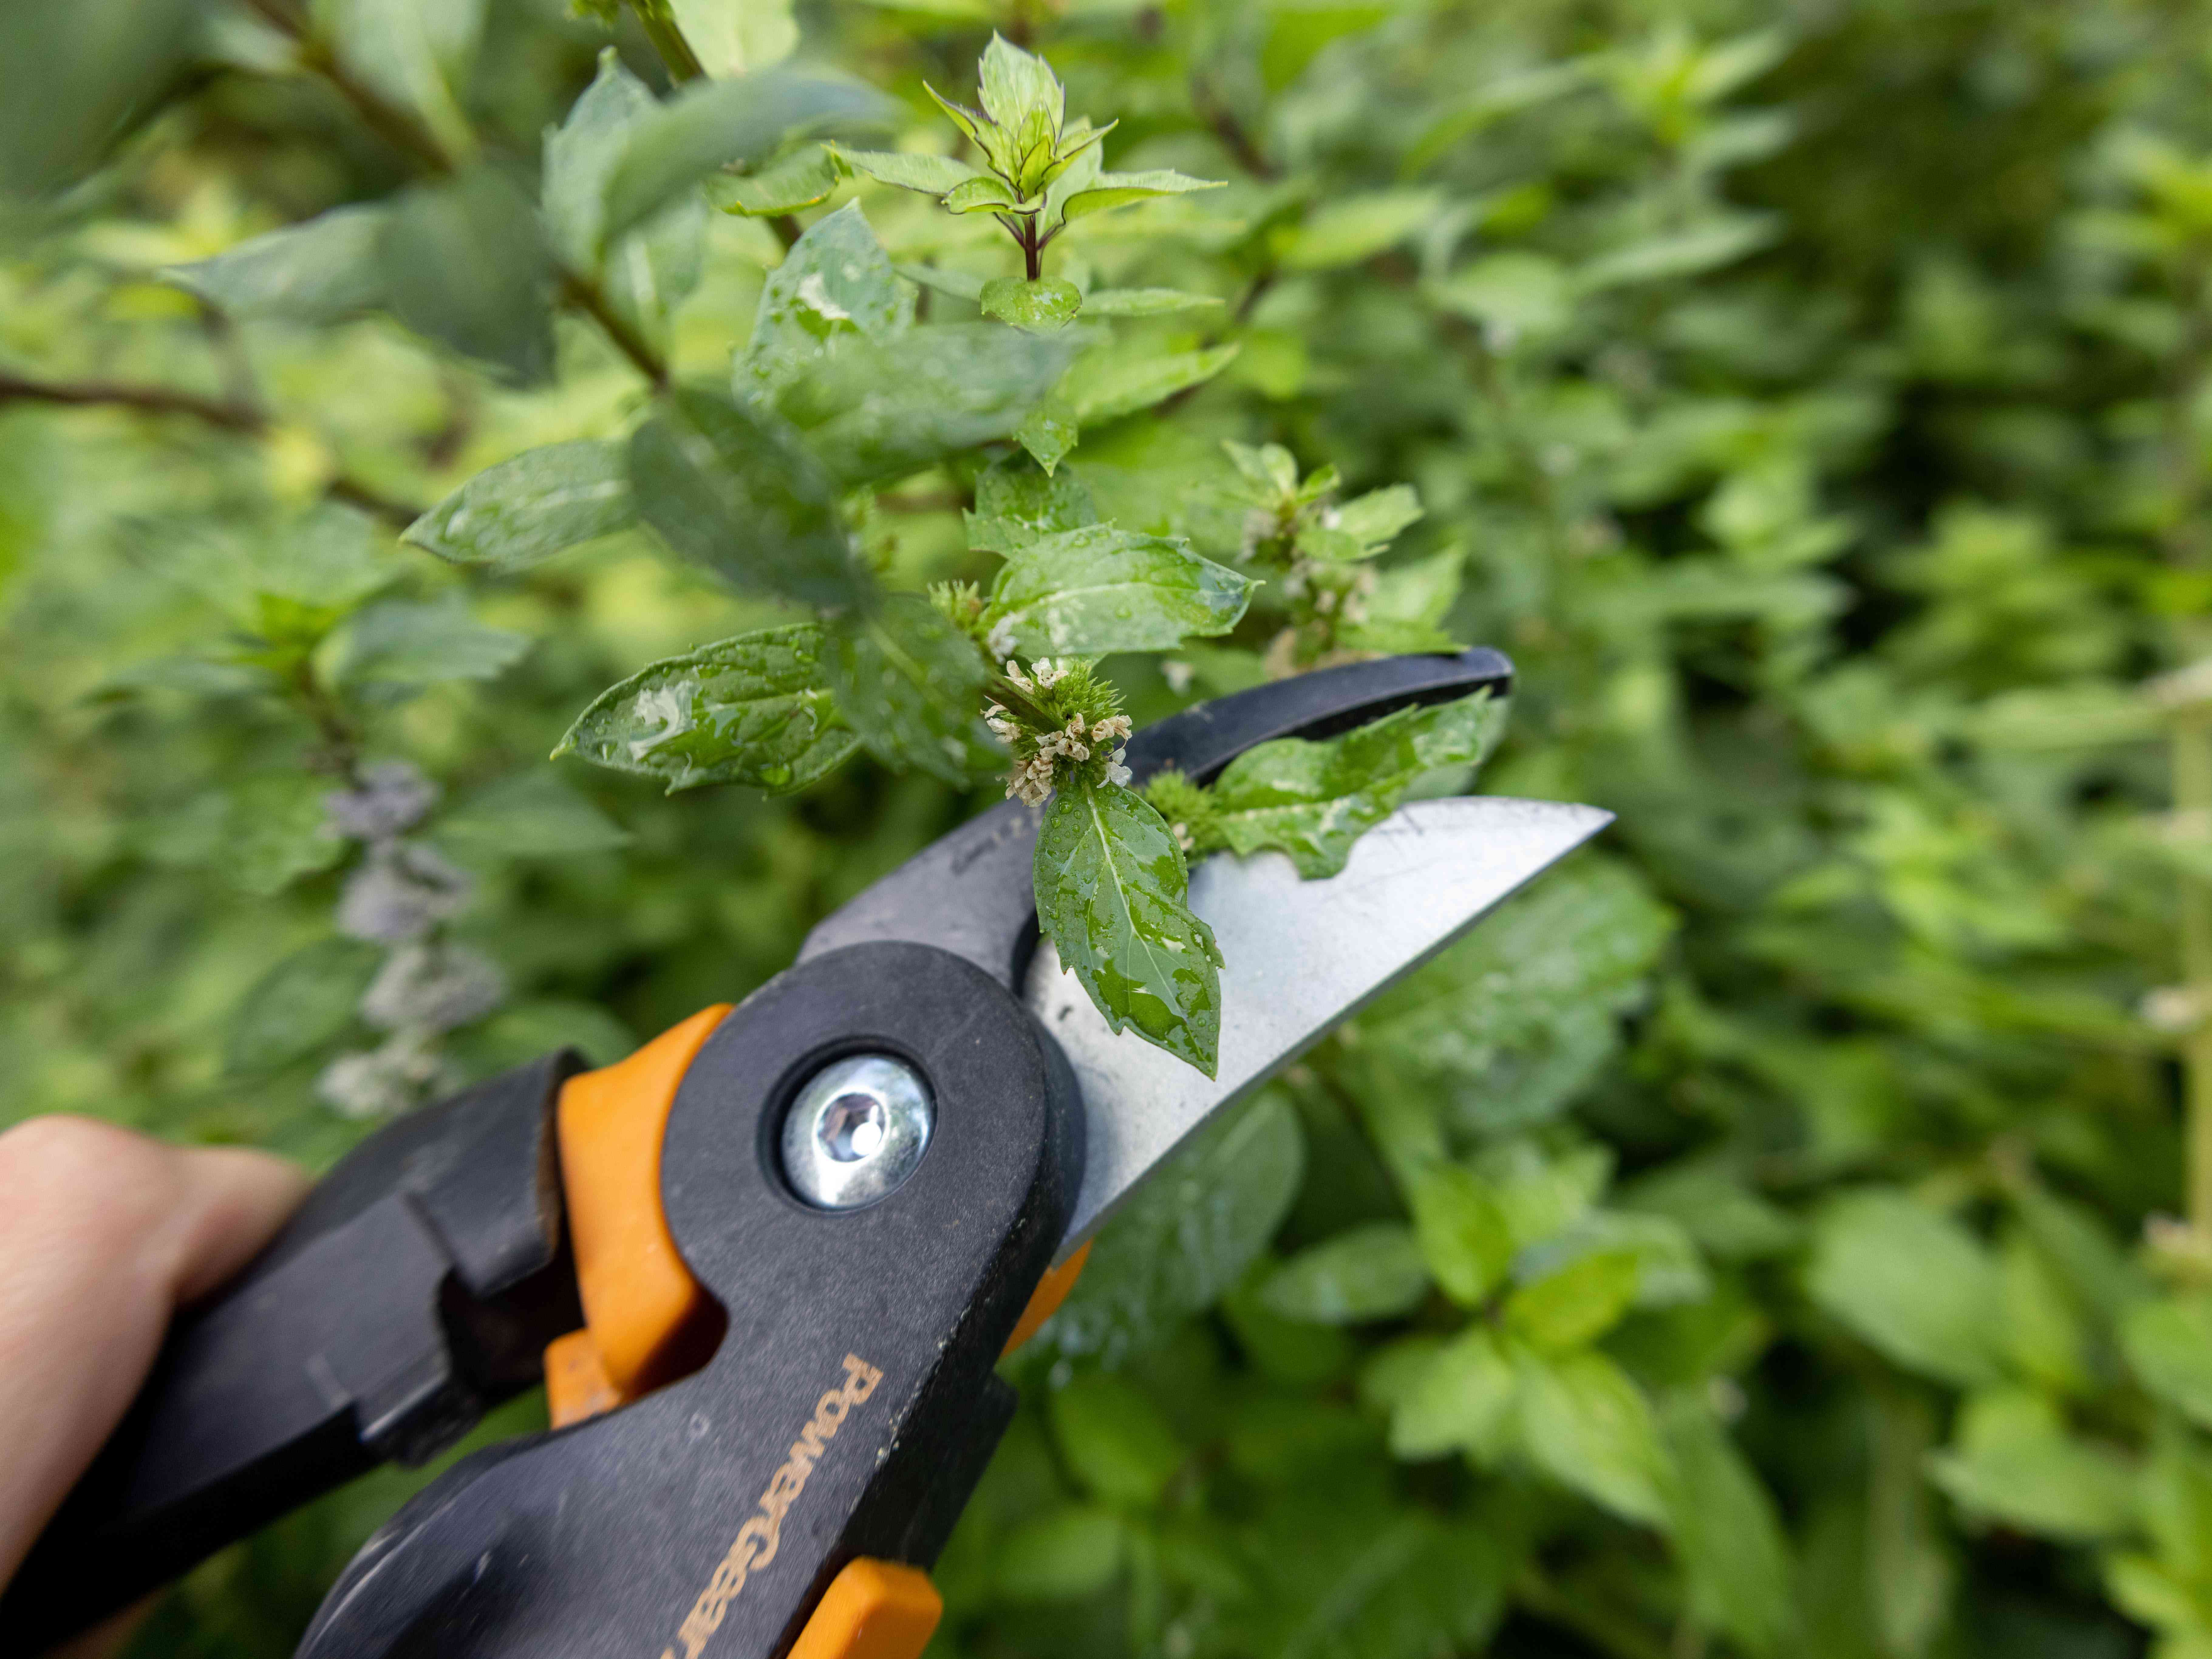 garden shears are used to cut mint stem to transplant